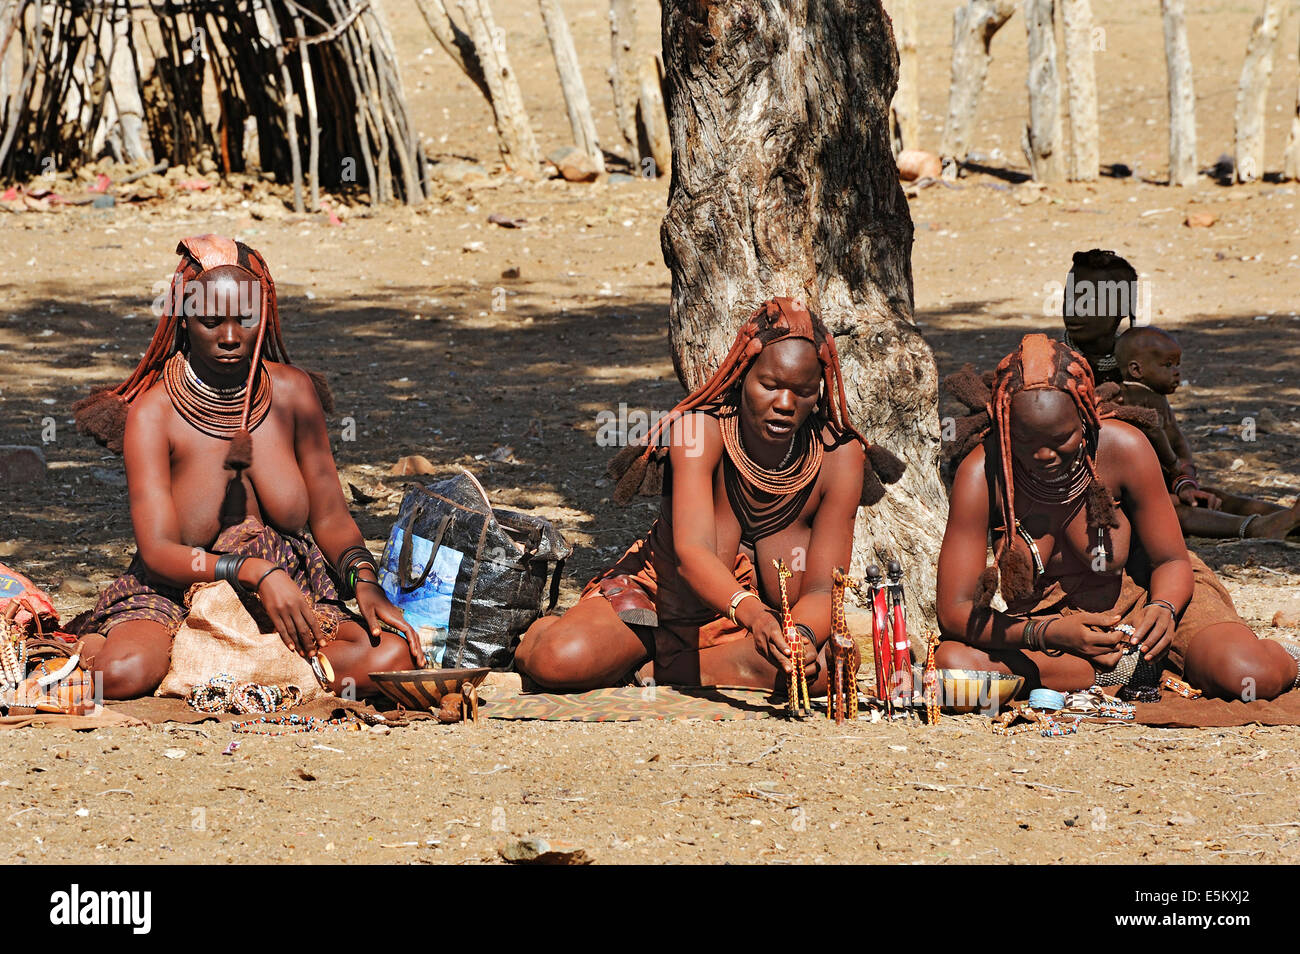 Women selling carvings in a Himba village, near Opuwo, Namibia - Stock Image